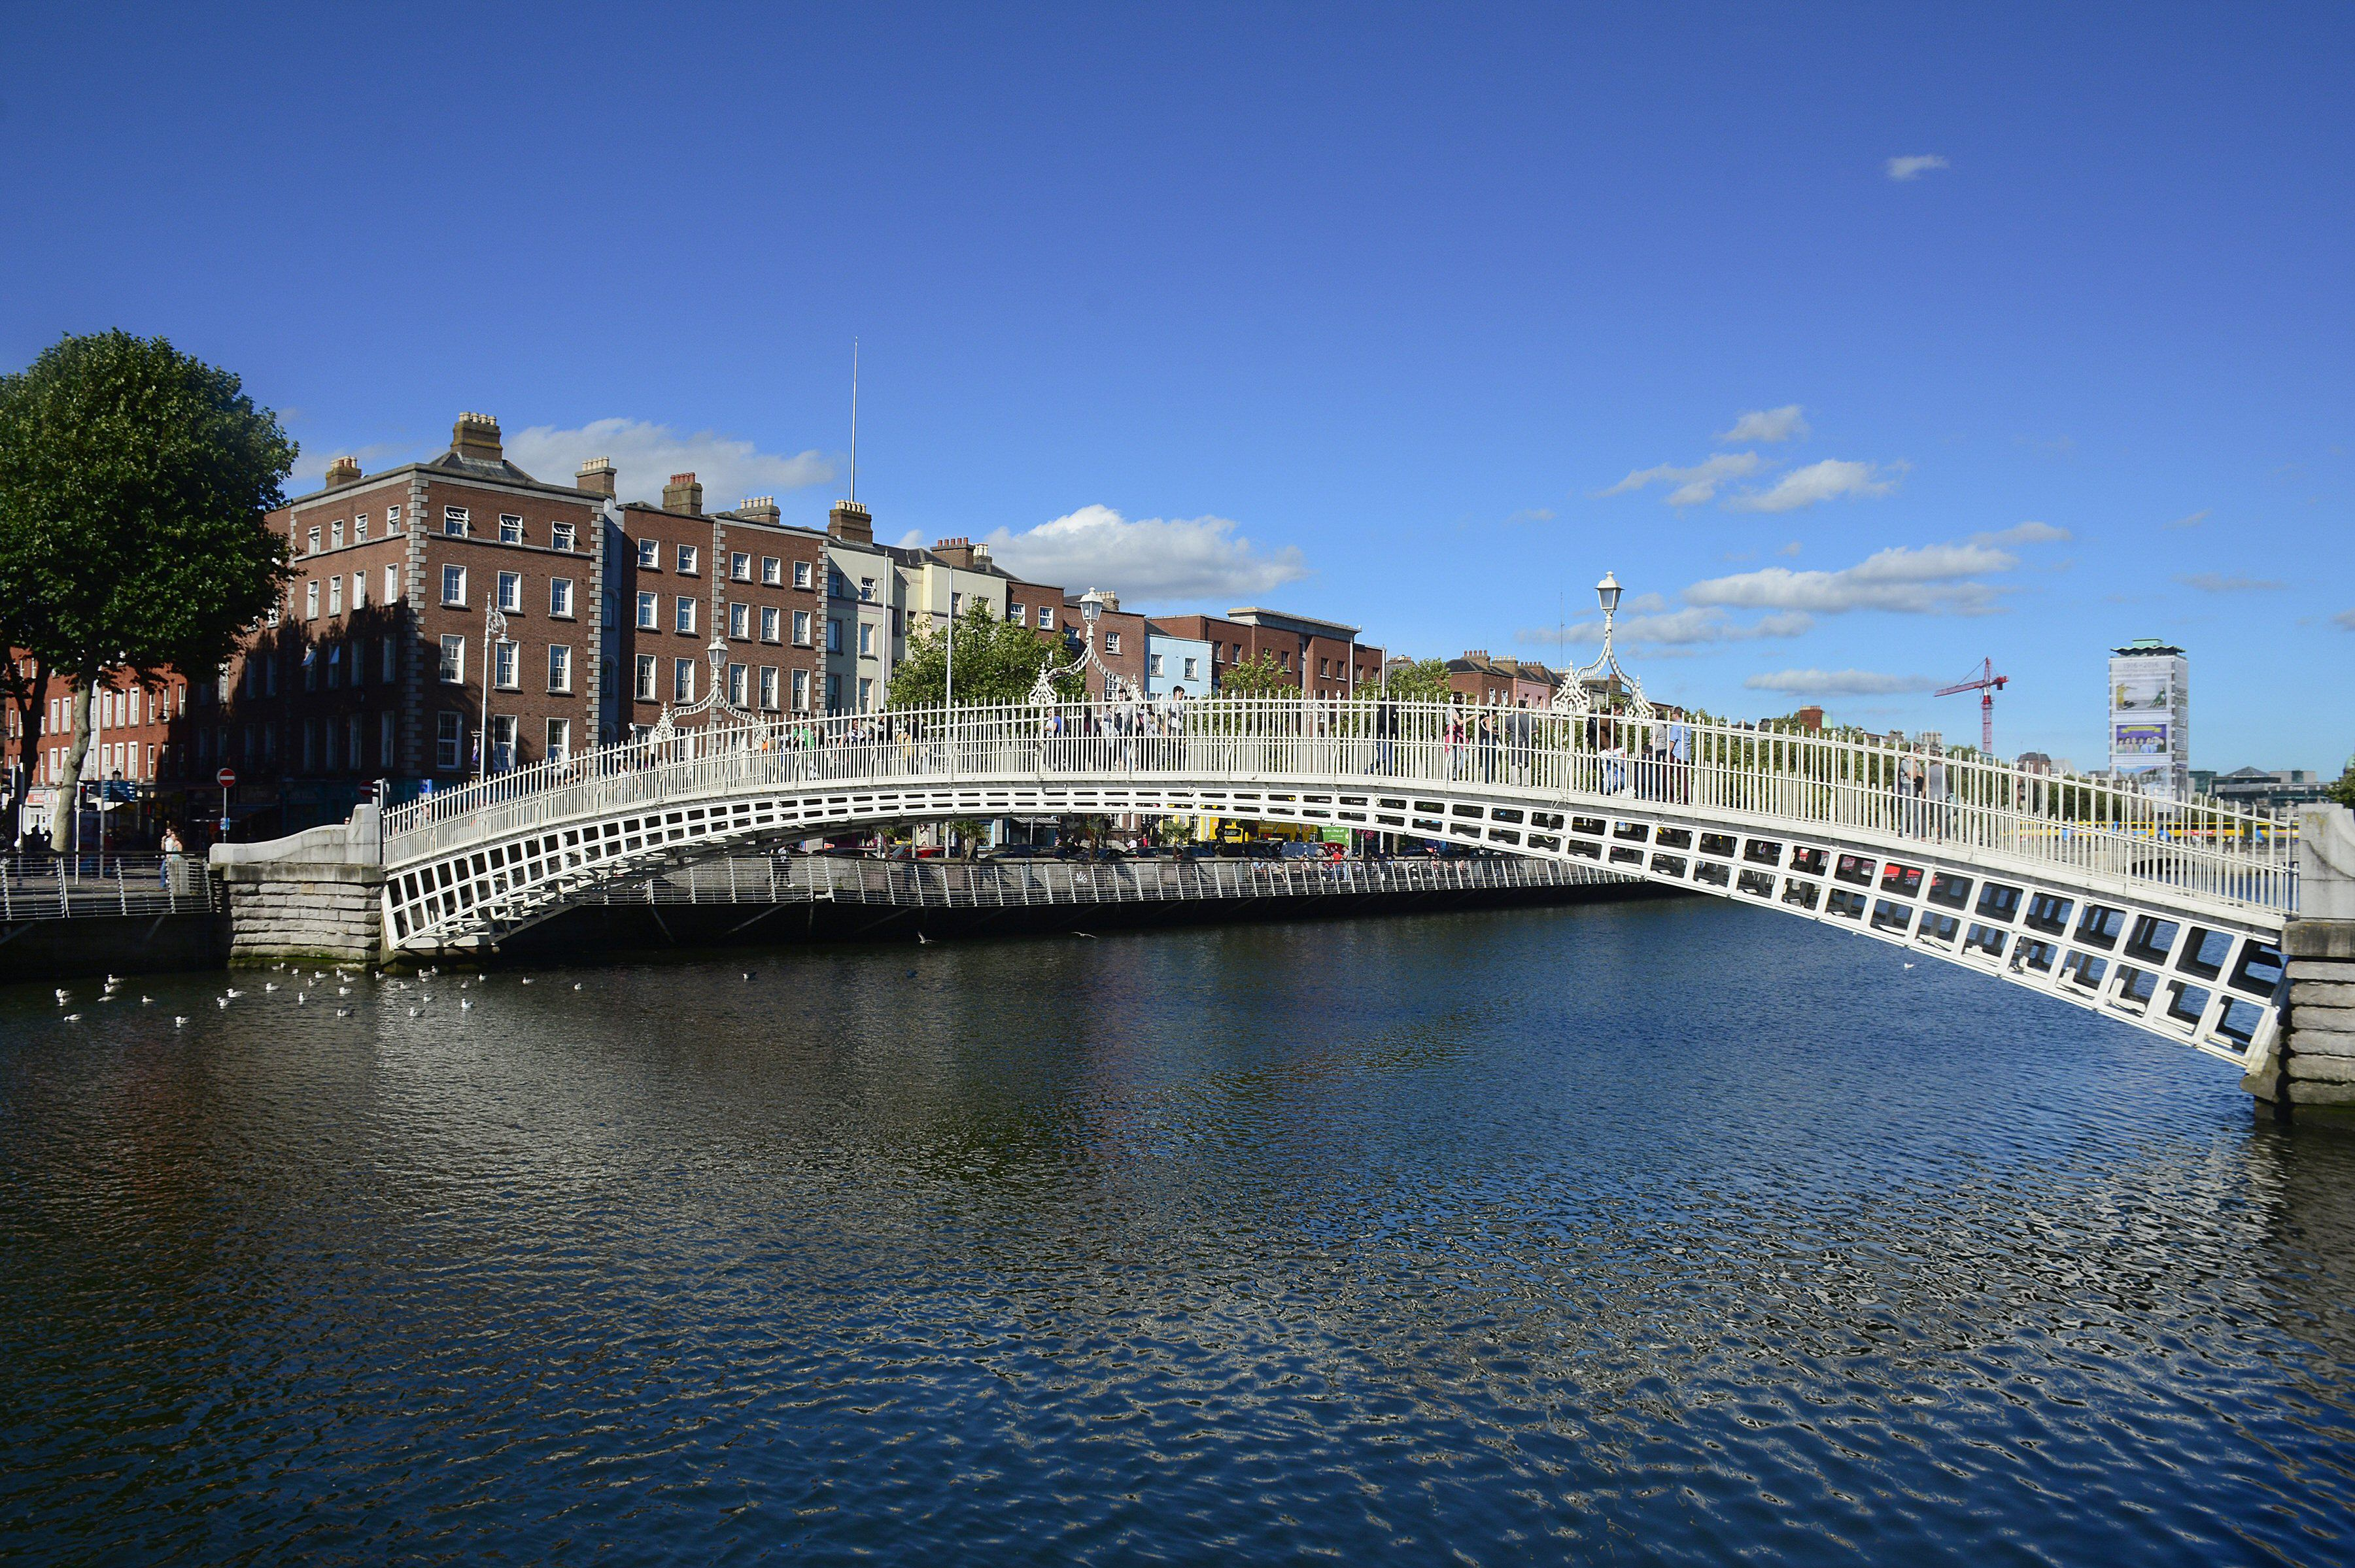 long, low arch of iron bridge over Liffey River in Dublin